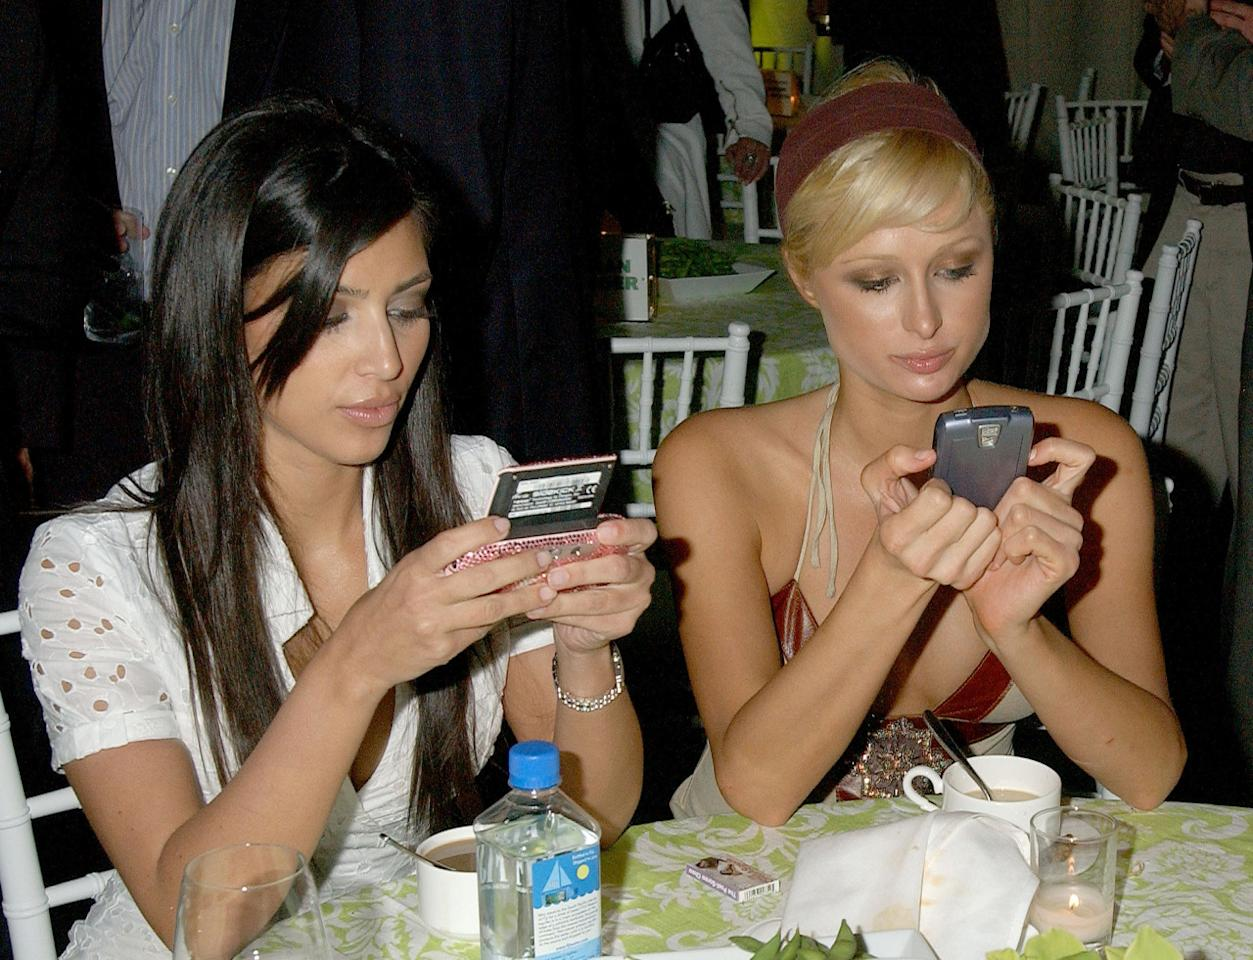 <p>Still at that <em>Entourage</em> party. Note the relics of 2006: side bangs, bedazzled sidekicks, and BlackBerries (how we miss you).</p>